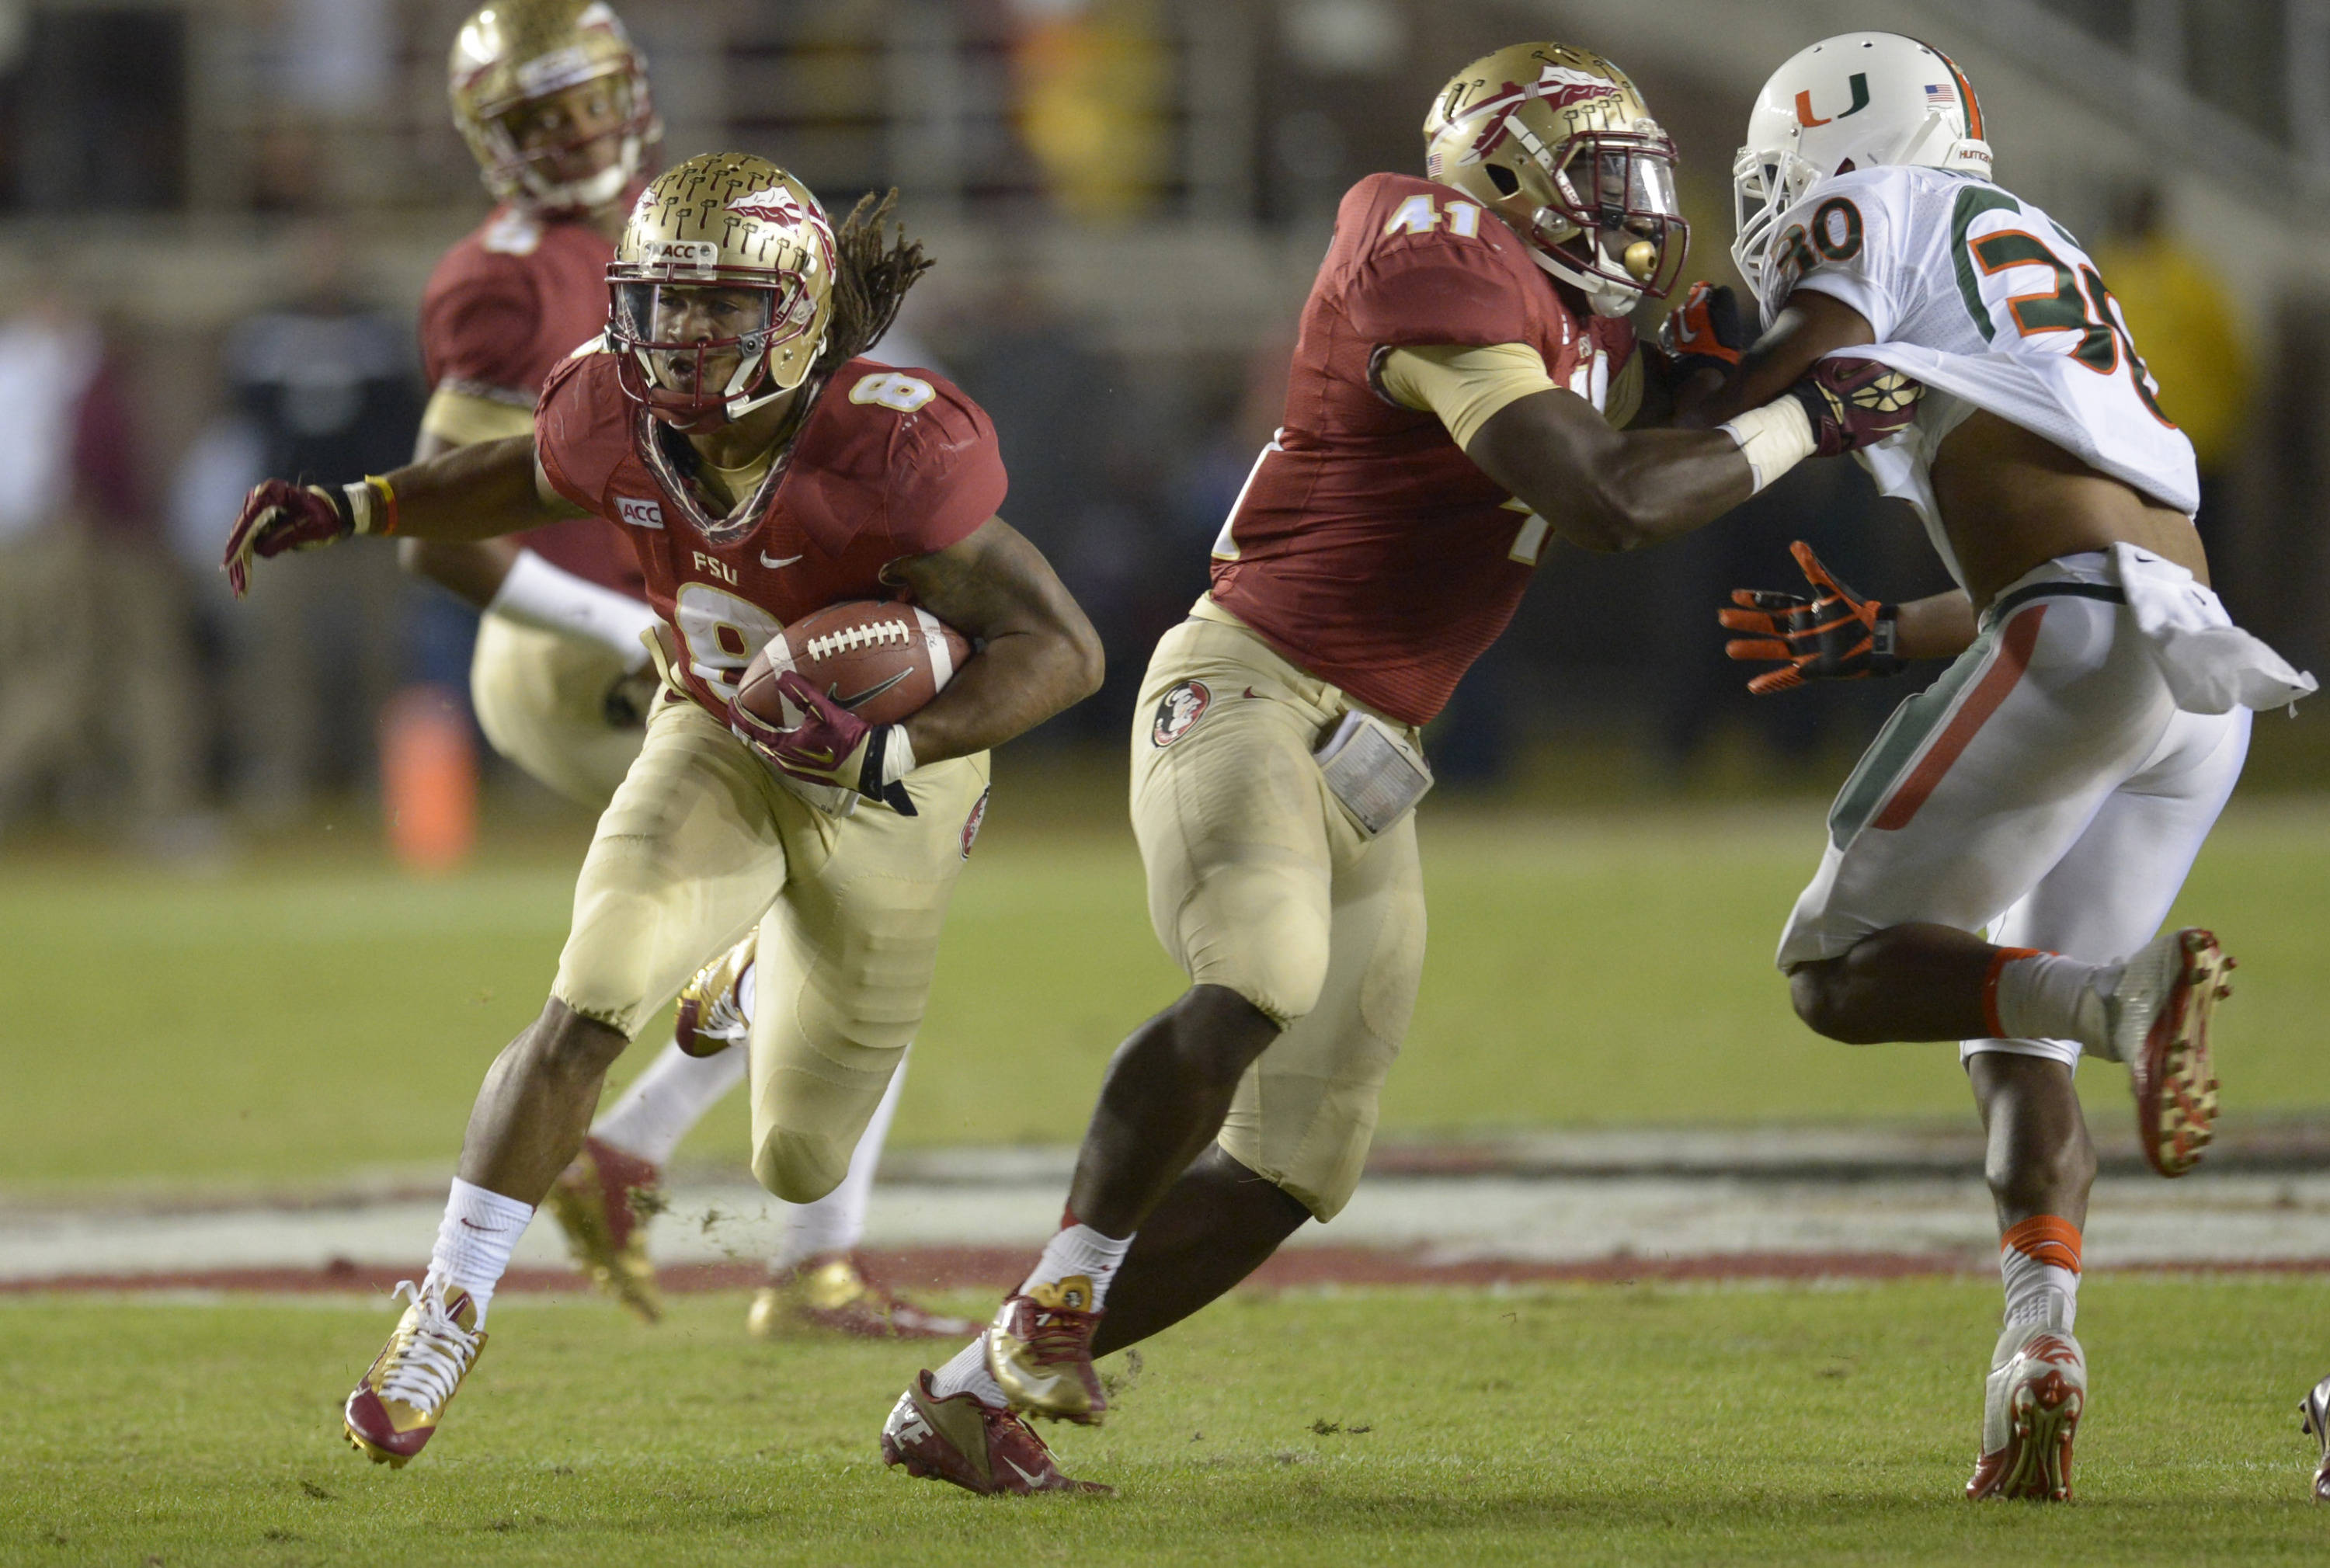 Florida State Seminoles running back Devonta Freeman (8) carries against the Miami Hurricanes during the first quarter at Doak Campbell Stadium. Mandatory Credit: John David Mercer-USA TODAY Sports